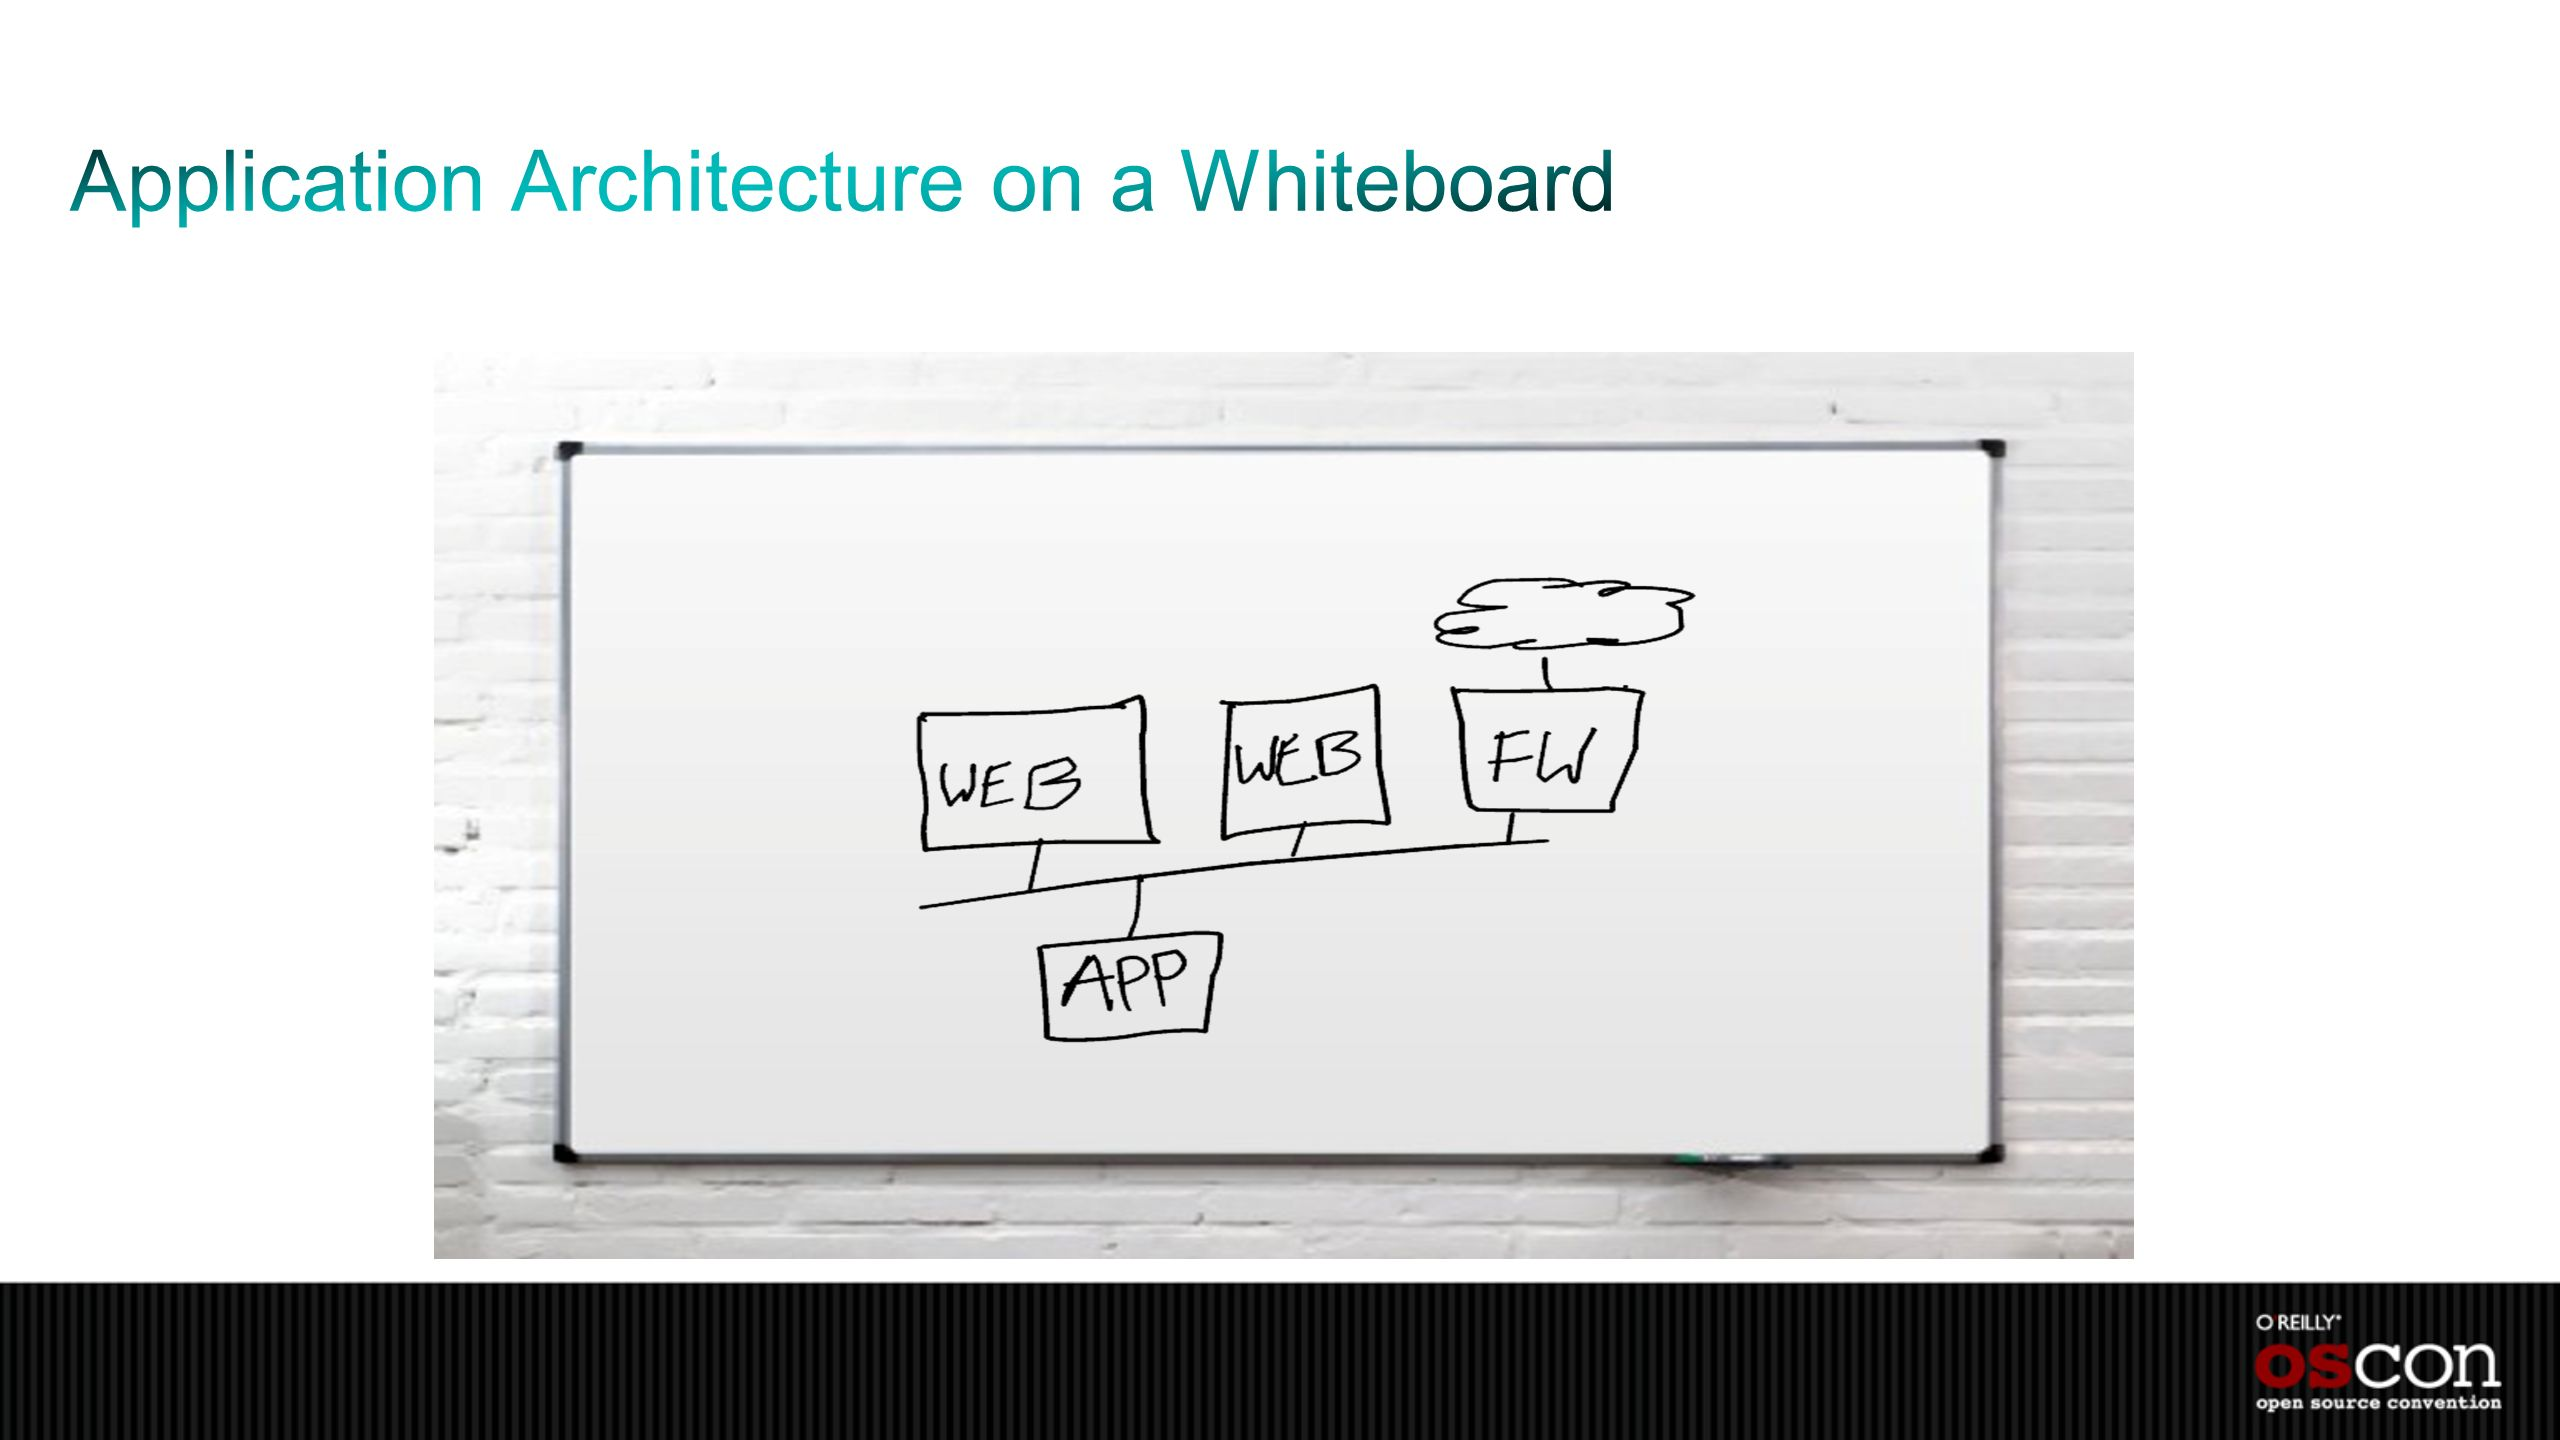 Application Architecture on a Whiteboard